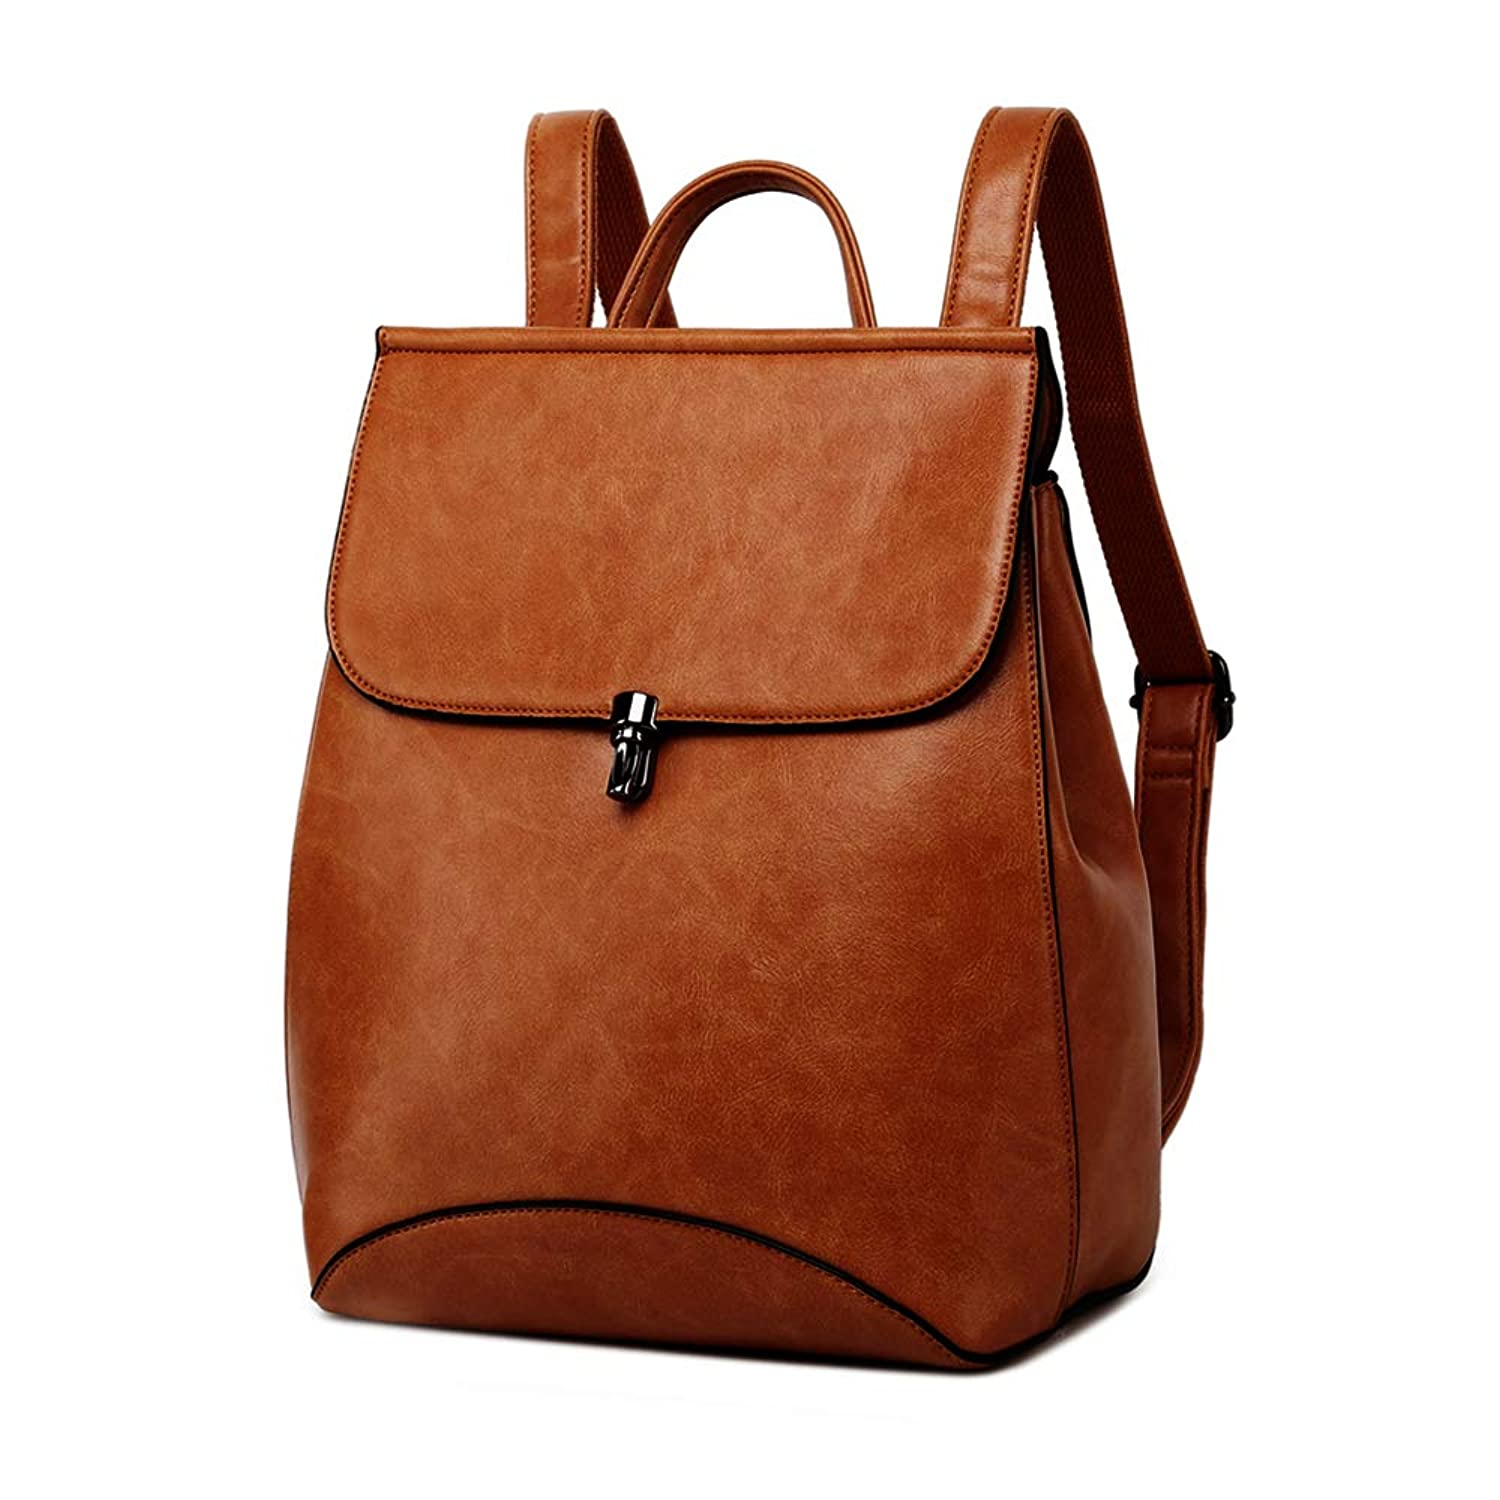 244bba9bf125 MATERIAL  Material Updated To Good Quality PU Leather. It s a Beautiful and  Simplistic Design Leather Botton Closure Shoulder Bag.